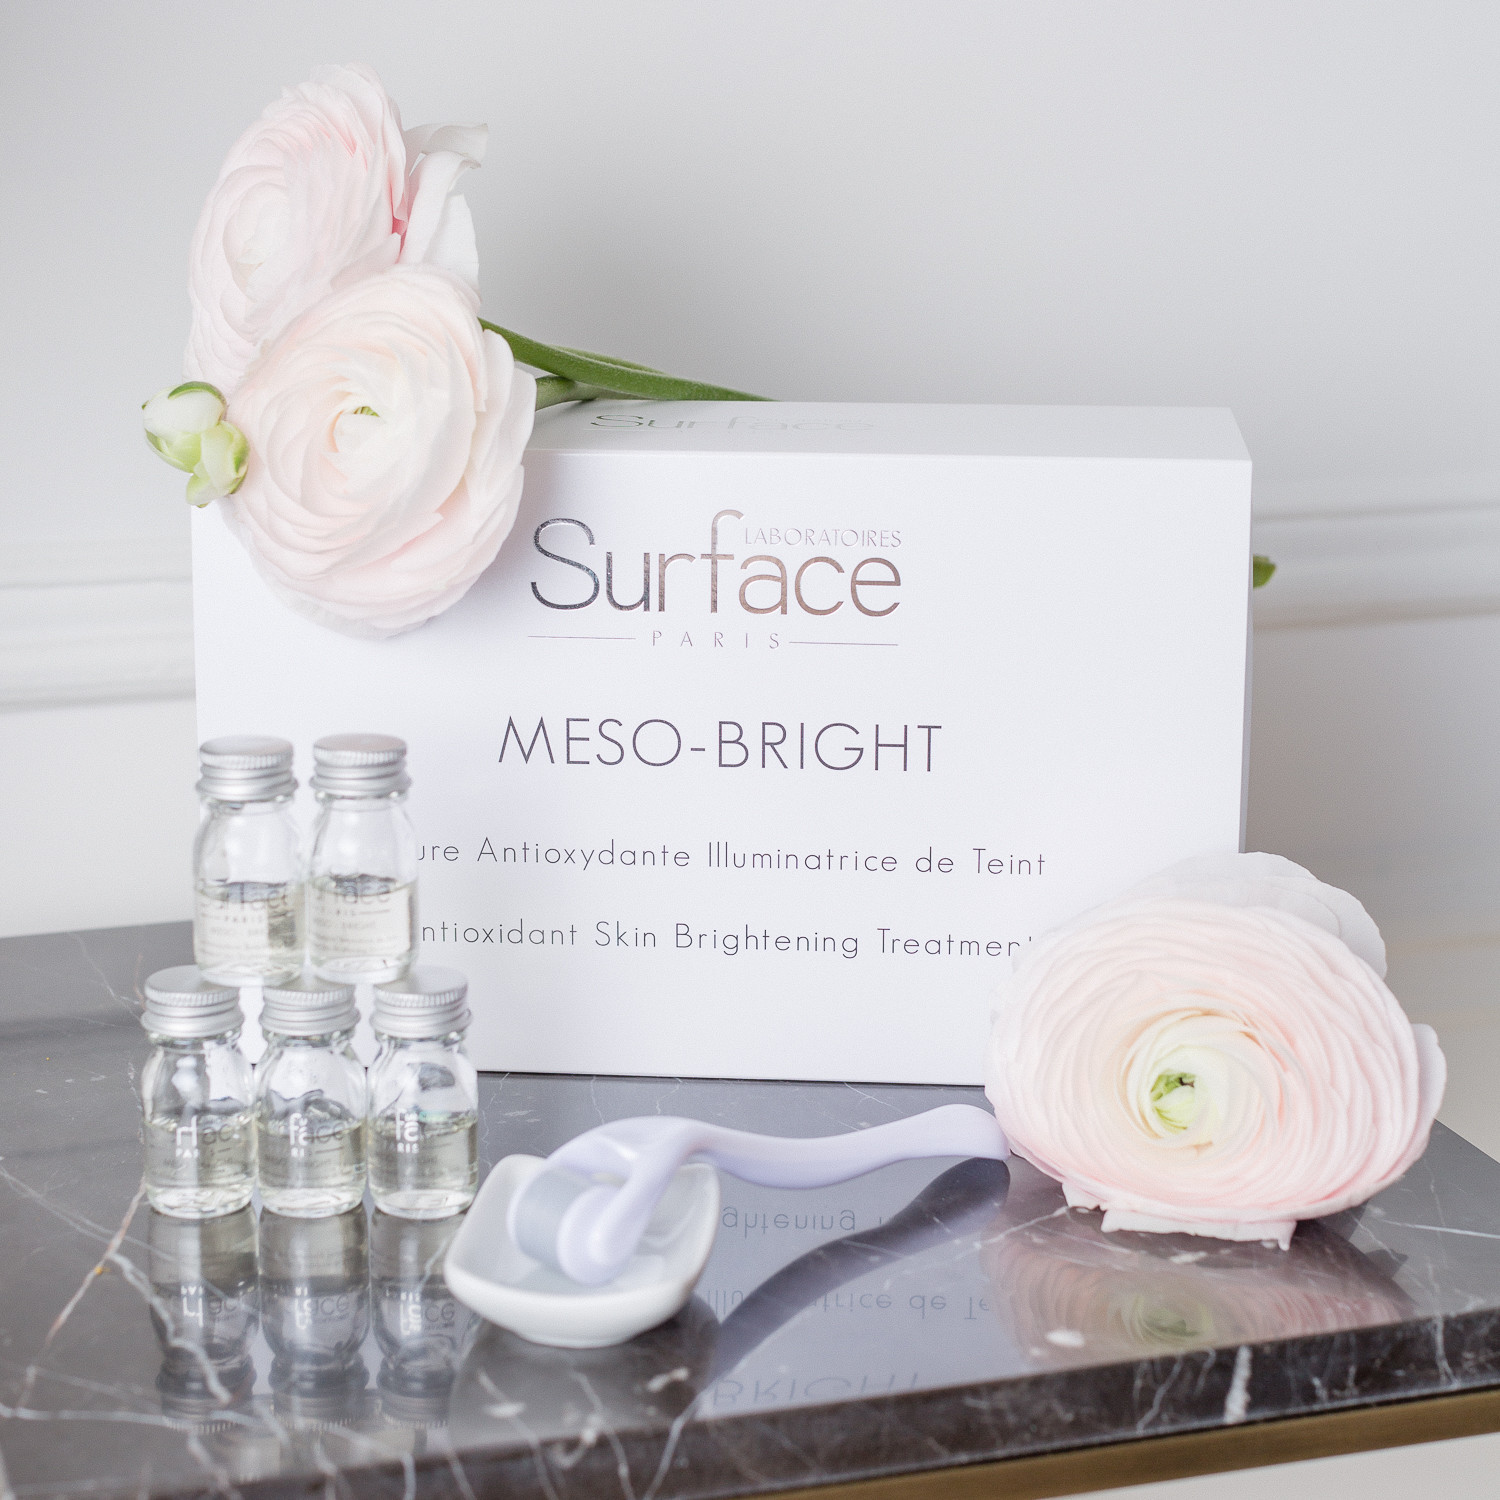 Surface Paris At Home Mesotherapy MESO-BRIGHT